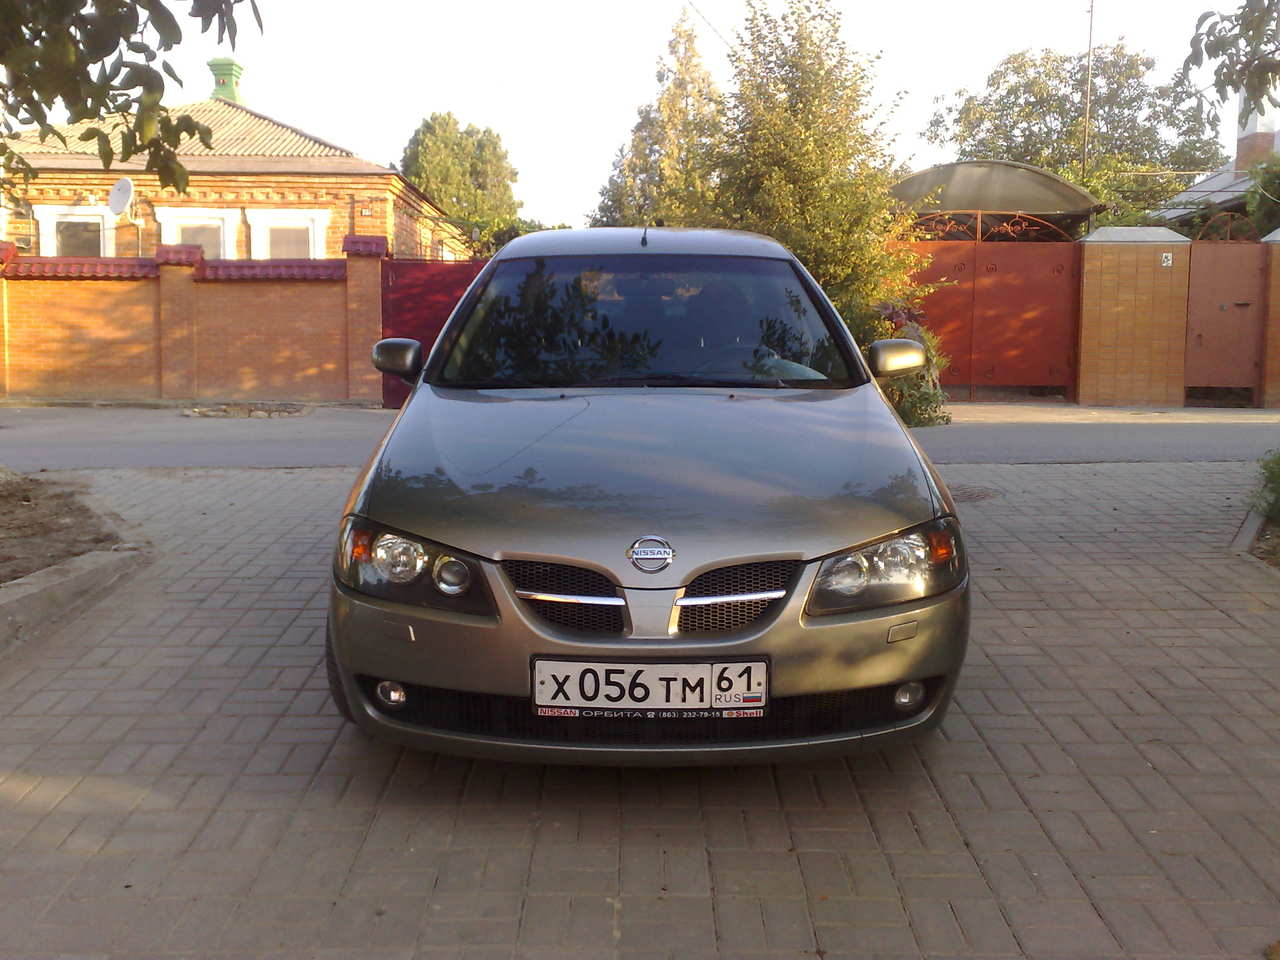 2005 nissan almera pictures gasoline ff automatic for sale. Black Bedroom Furniture Sets. Home Design Ideas